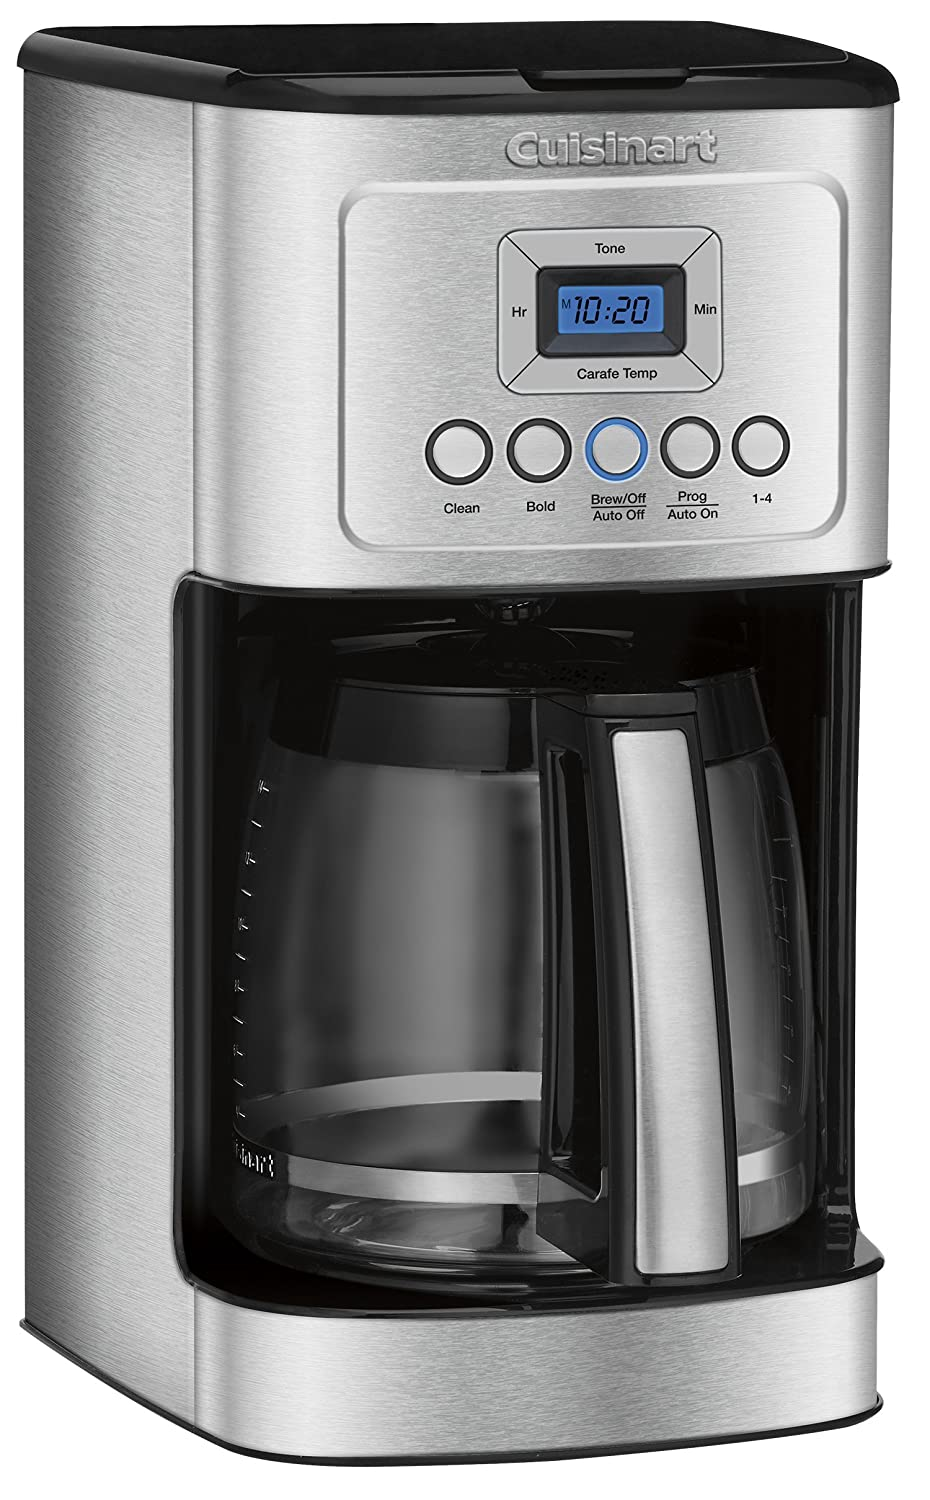 Cuisinart coffee maker stainless steel carafe - Amazon Com Cuisinart Dcc 3200 14 Cup Glass Carafe With Stainless Steel Handle Programmable Coffeemaker Silver Kitchen Dining